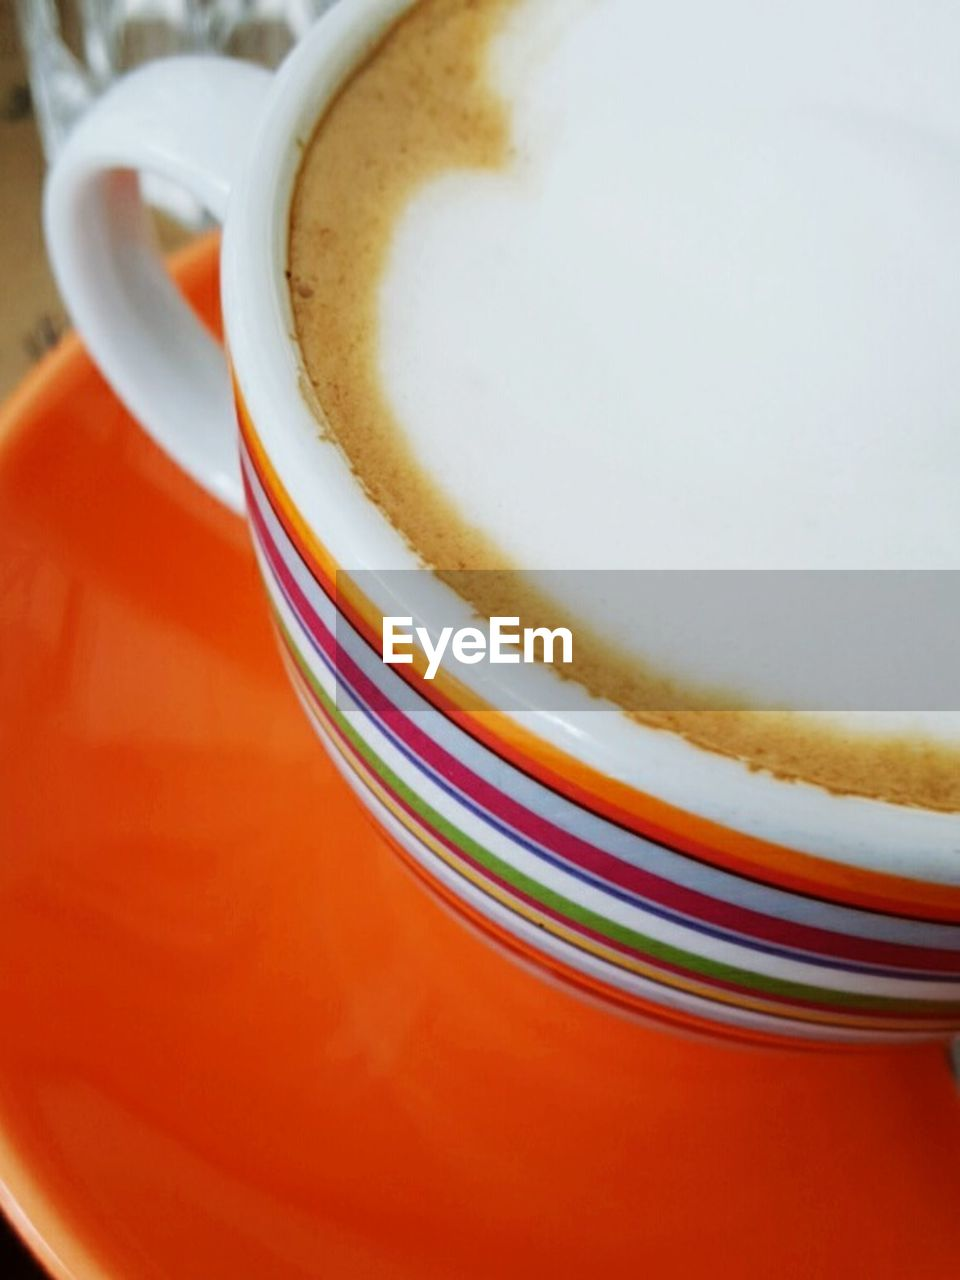 drink, refreshment, food and drink, cup, mug, coffee cup, coffee, close-up, still life, coffee - drink, indoors, freshness, no people, hot drink, table, frothy drink, crockery, focus on foreground, food, saucer, non-alcoholic beverage, froth